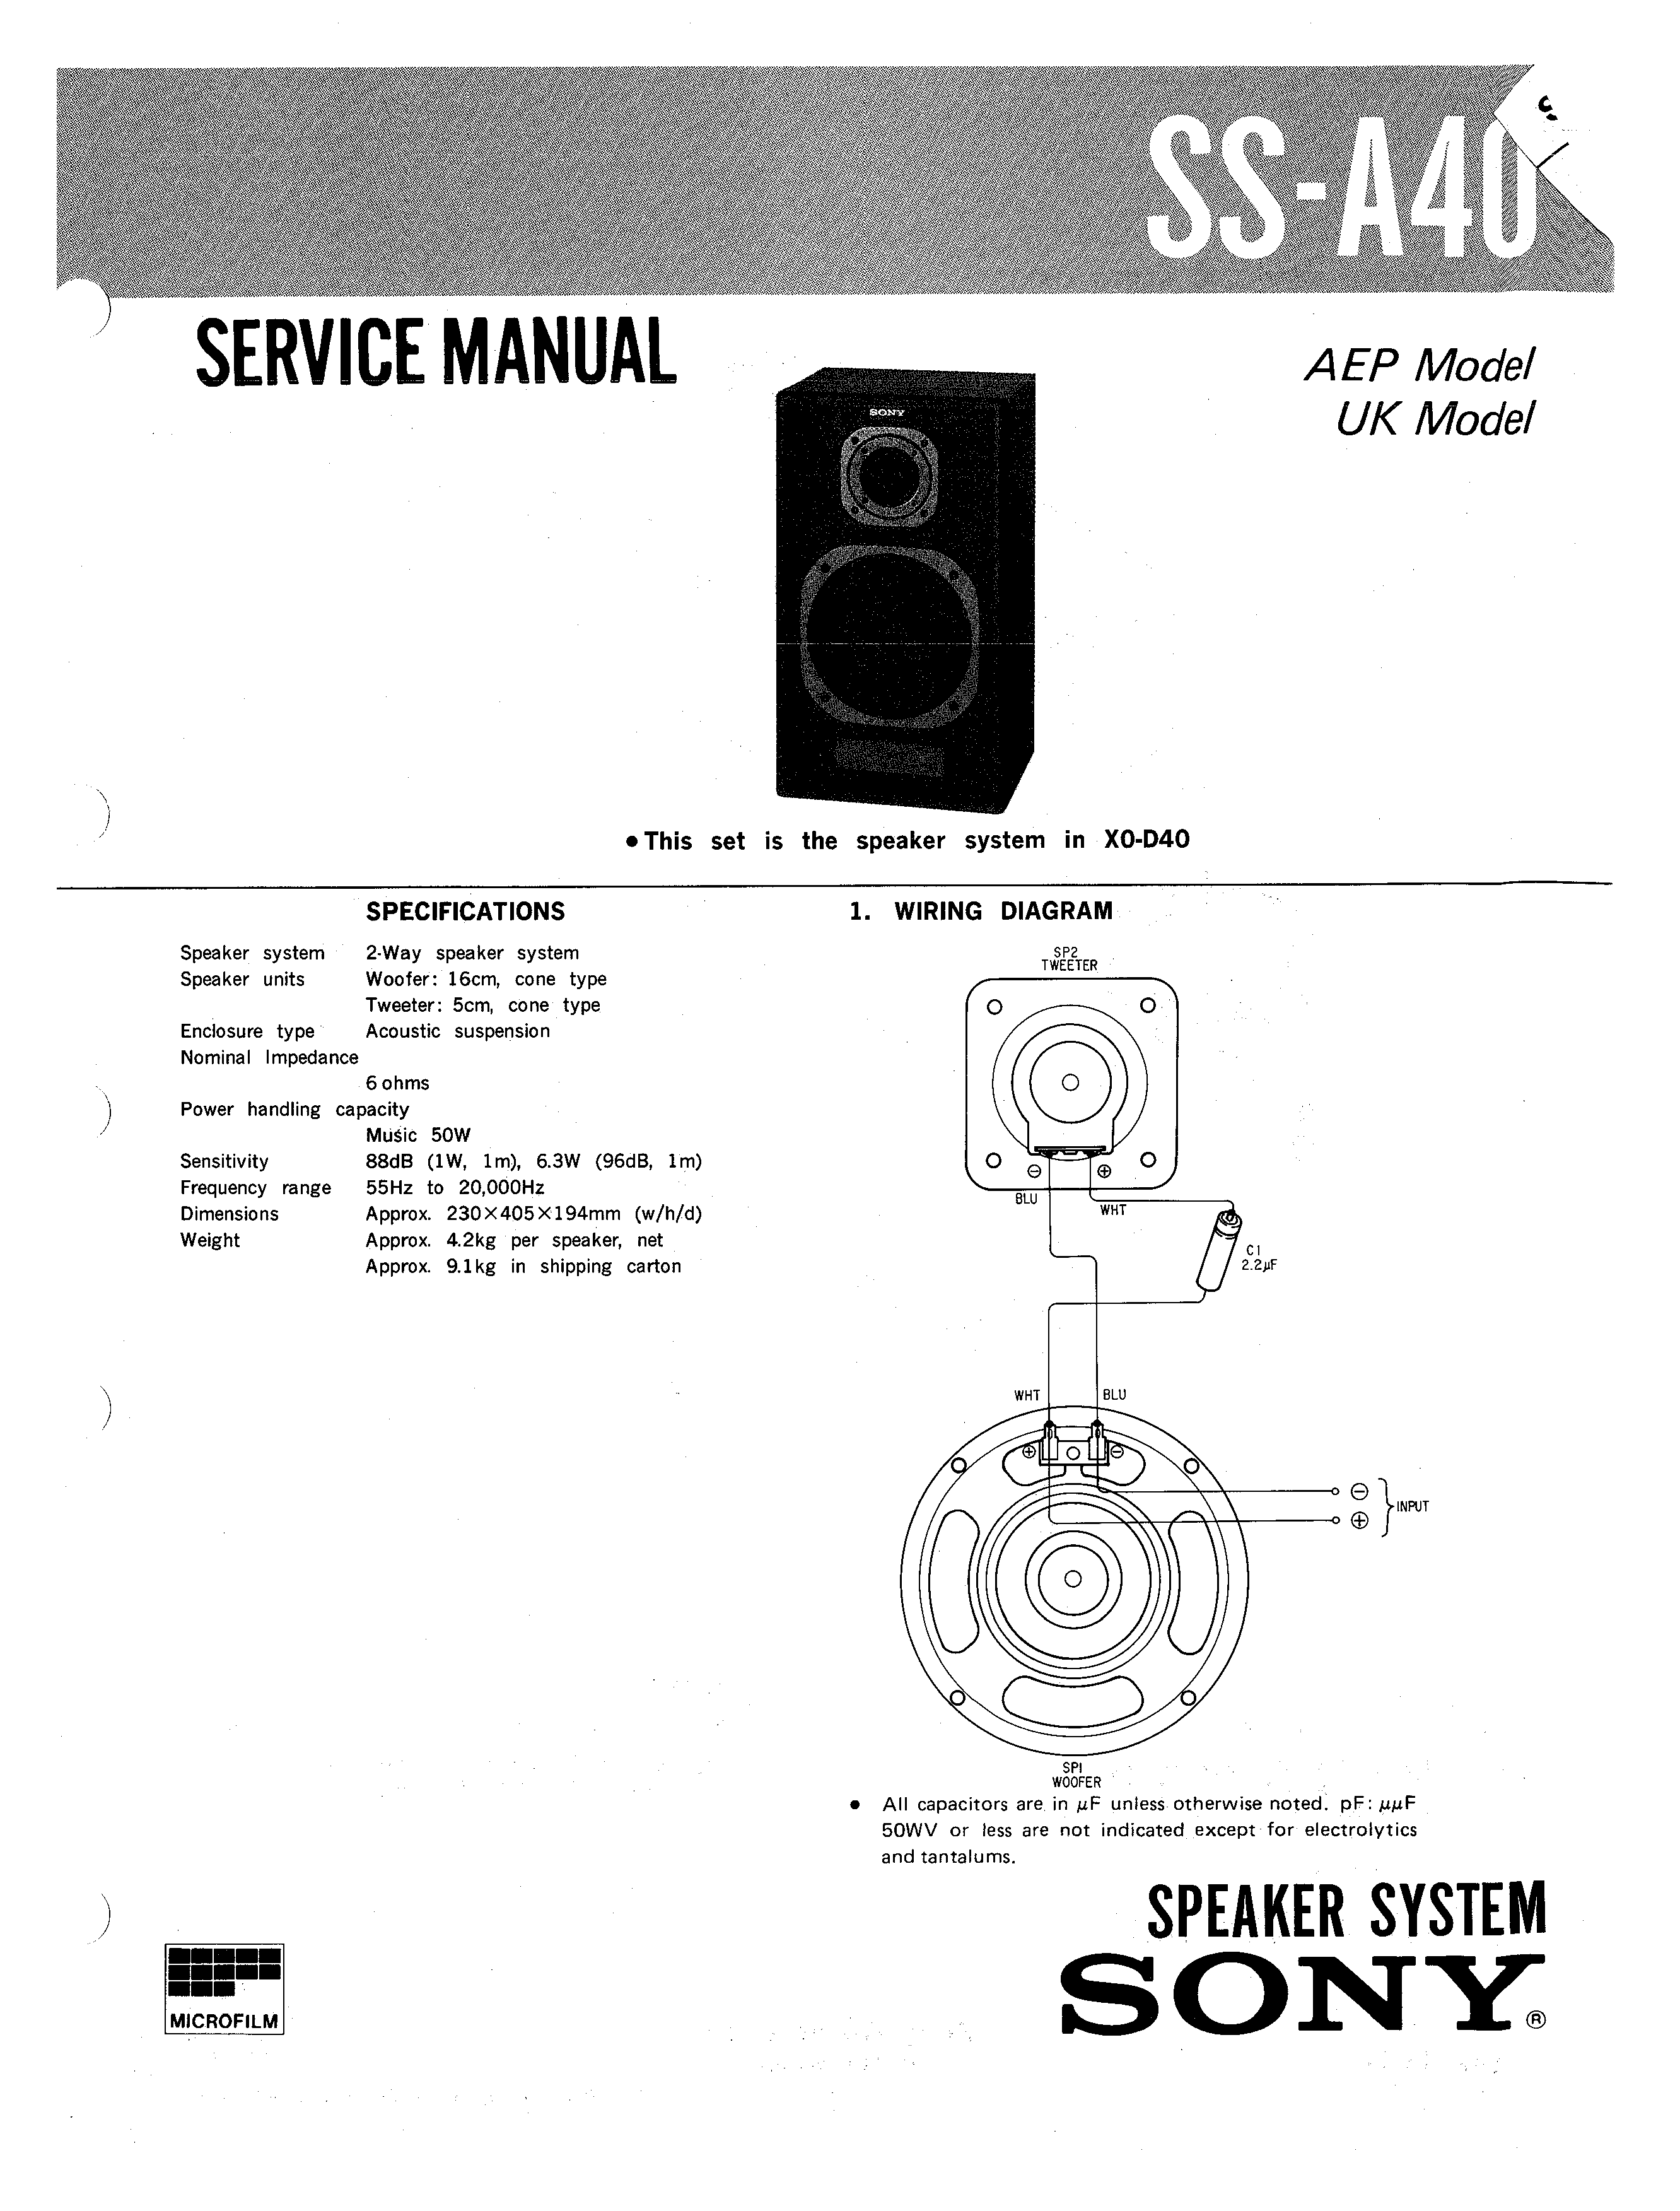 Sony Ssa40 Service Manual Immediate Download 2 Way Speaker Wiring Diagram Background Image